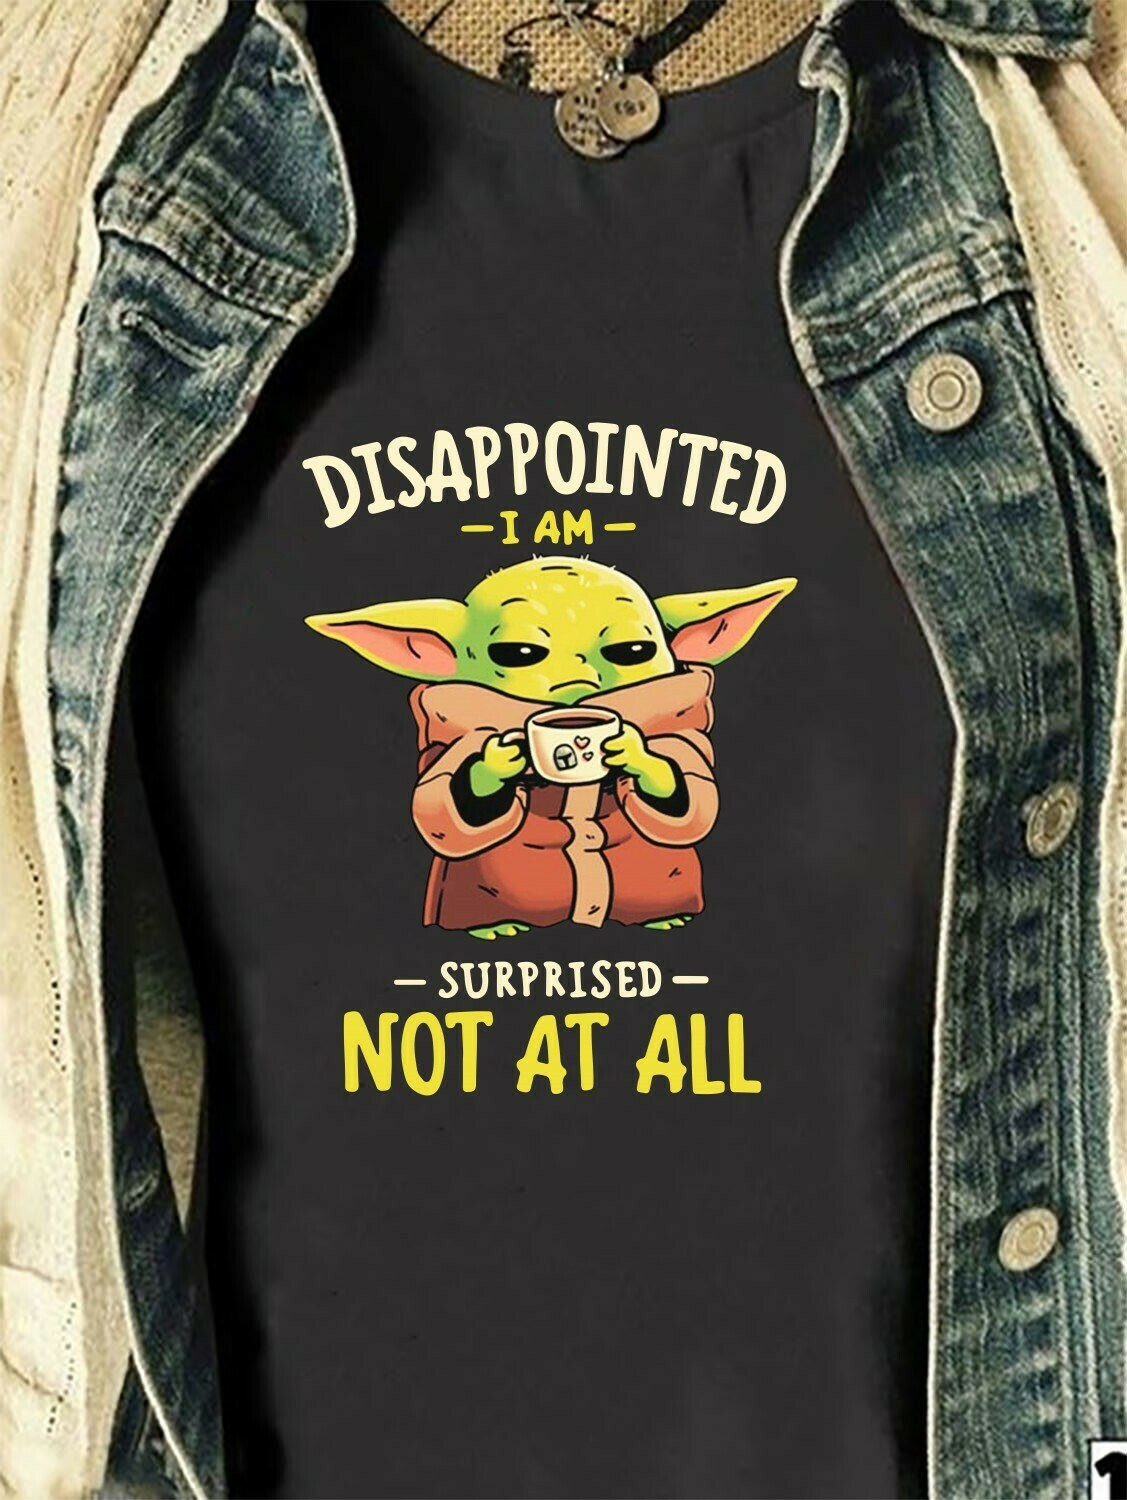 Baby Yoda disappointed I am Surprised not at all,Yoda Movie Adopt This Jedi Funny Valentines Gift Idea T-Shirt Long Sleeve Sweatshirt Hoodie Jolly Family Gifts